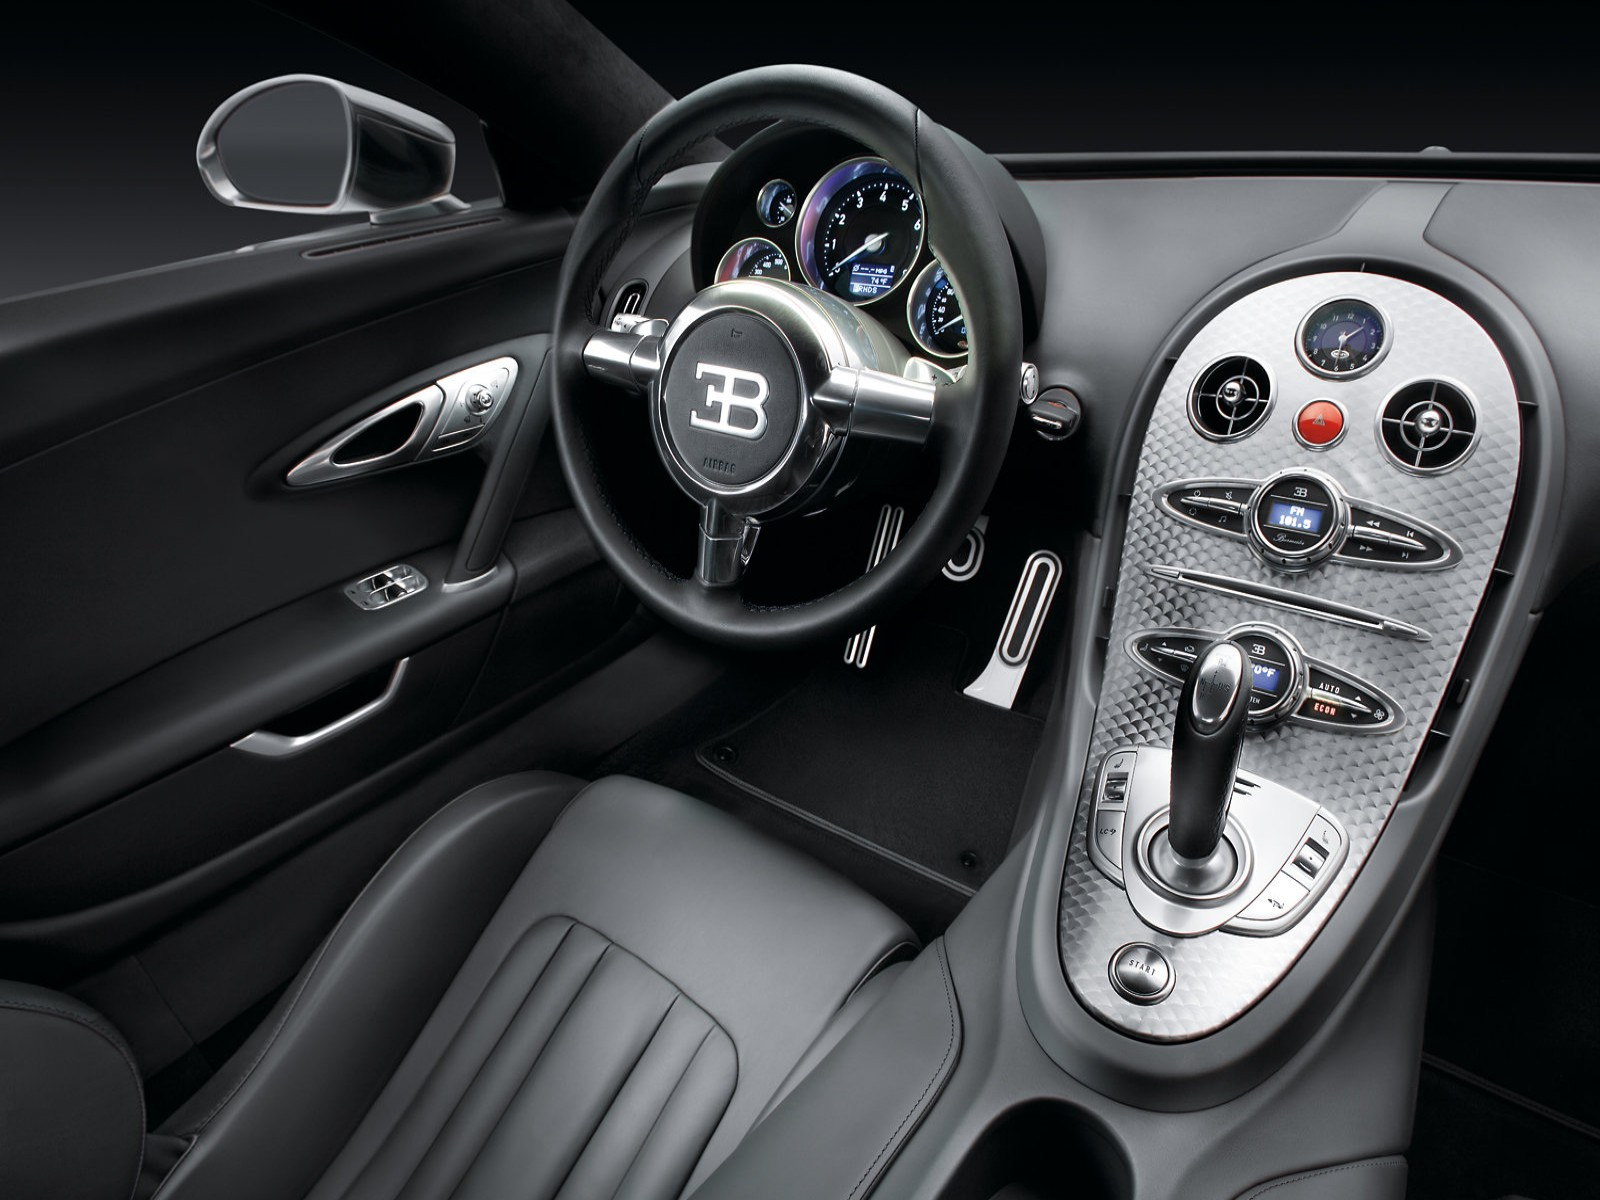 bugatti car images and bugatti car interior hd wallpapers for desktop fine hd wallpapers. Black Bedroom Furniture Sets. Home Design Ideas